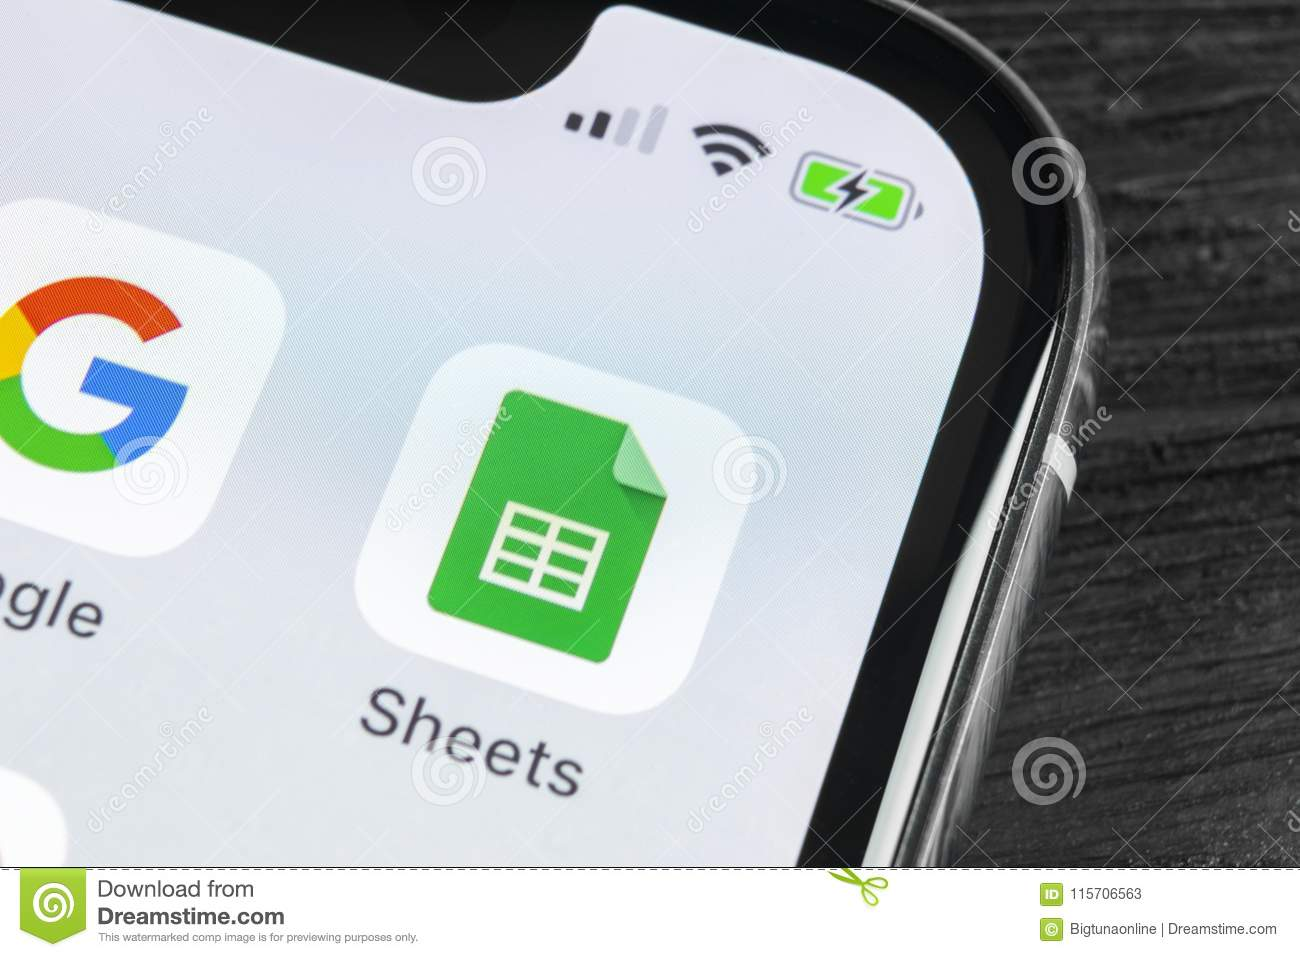 Google Sheets Icon On Apple IPhone X Smartphone Screen Close